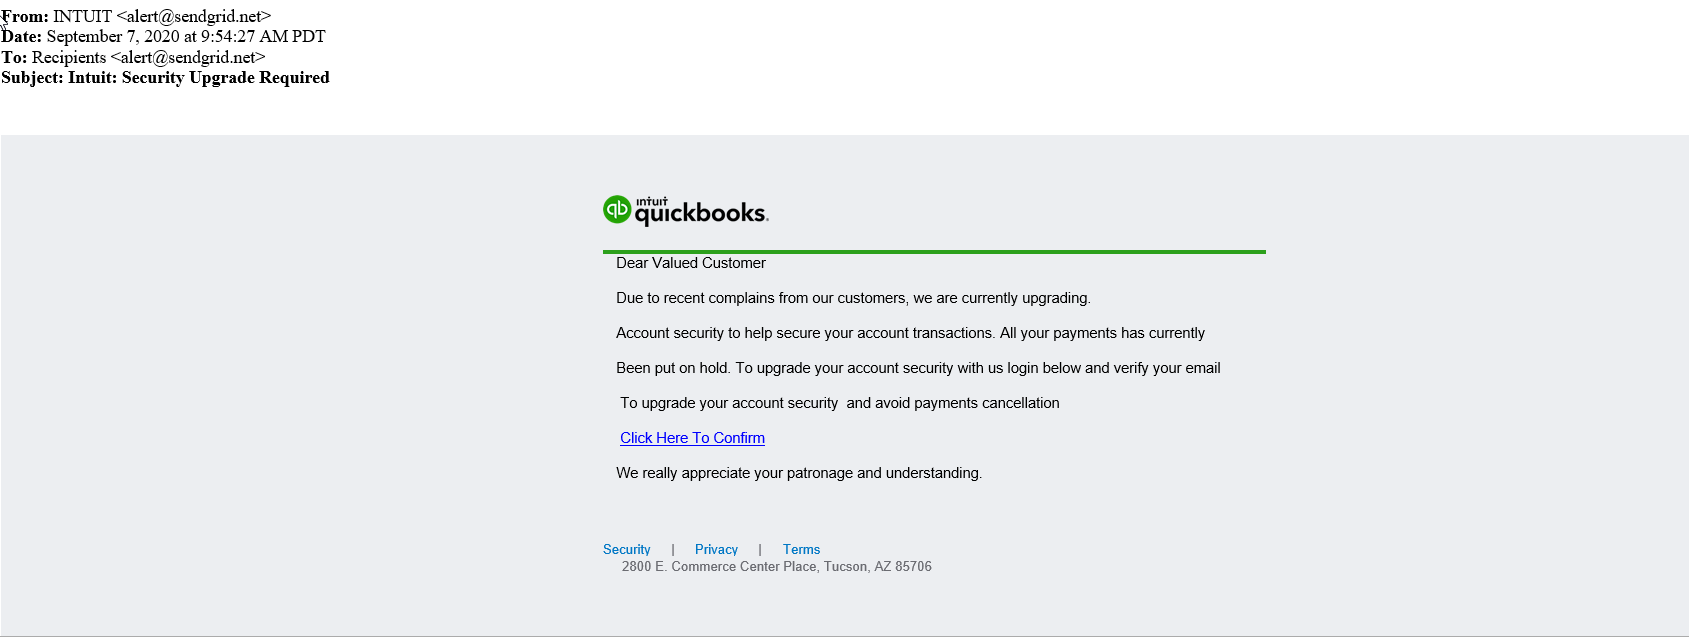 PHISHING EMAIL: QuickBooks Subscription Renewal Reminder